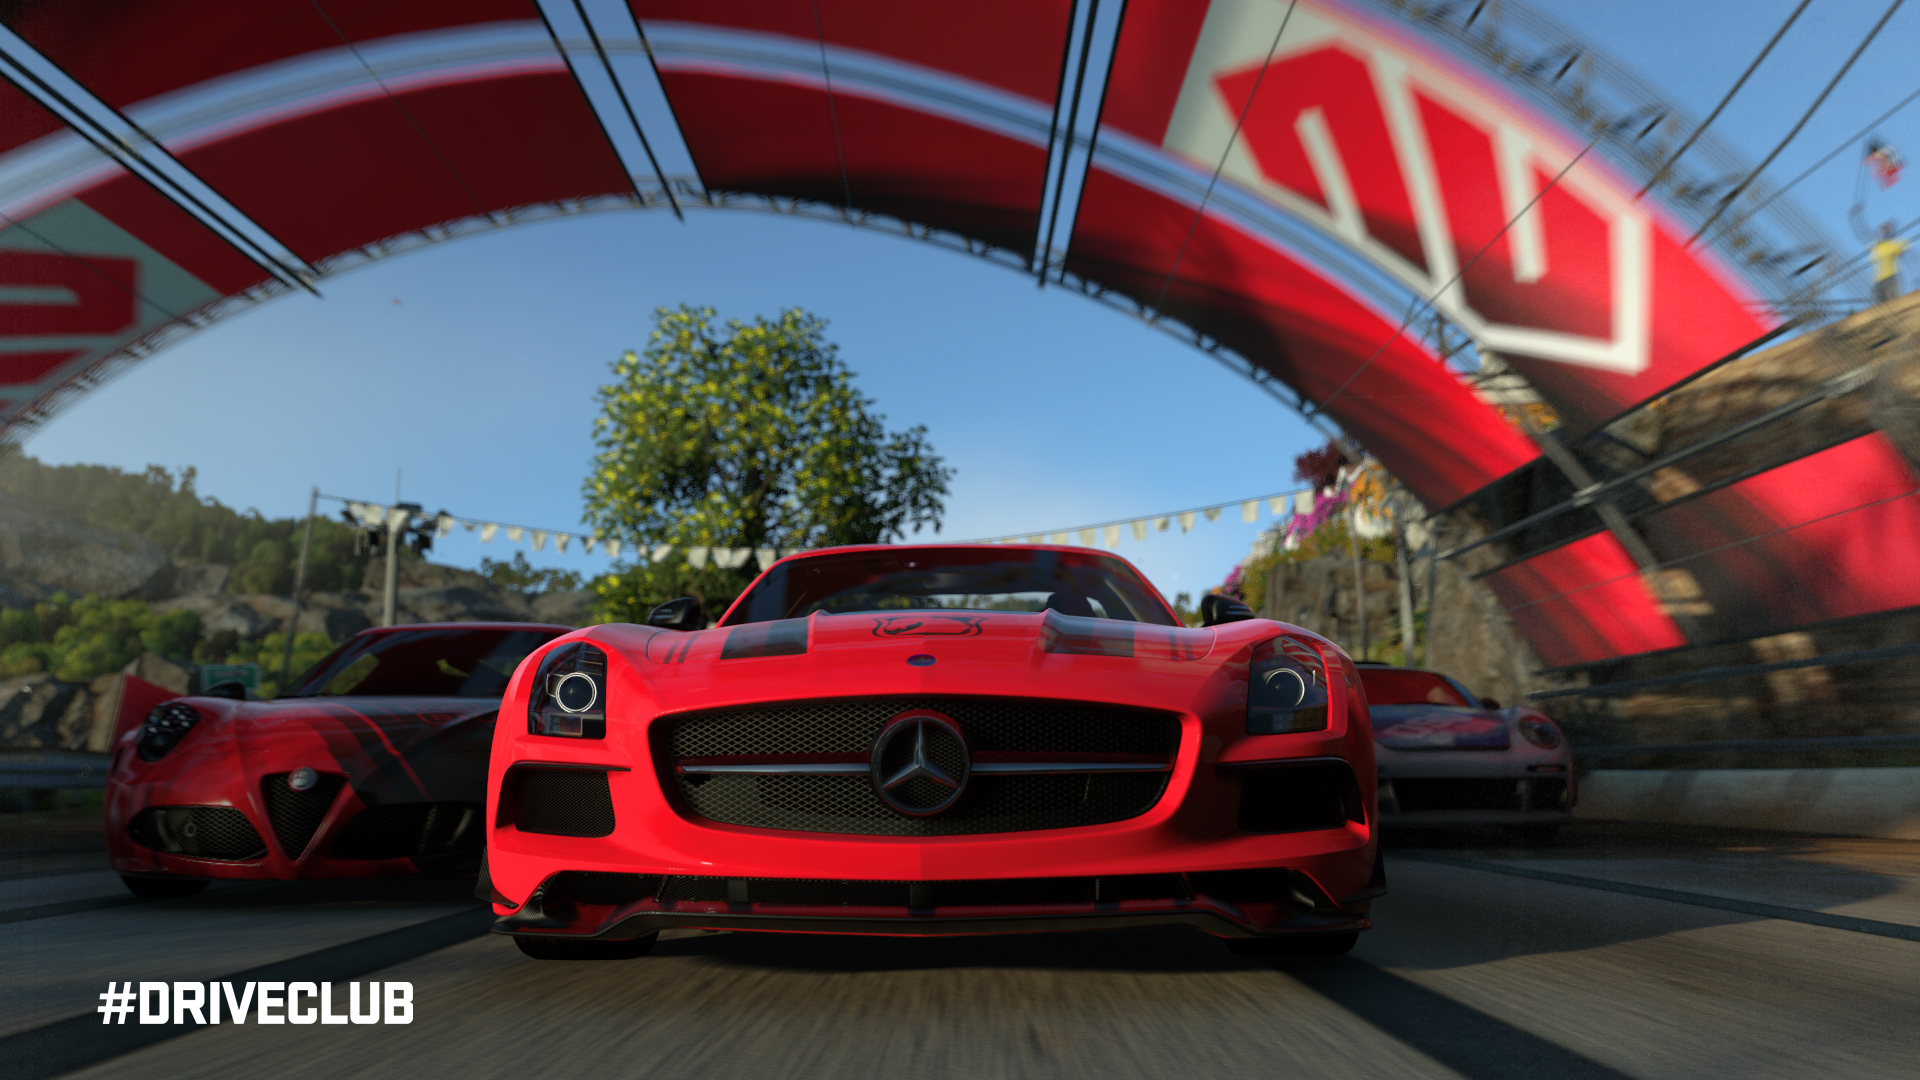 Driveclub Hd Wallpaper - Playstation 4 Driveclub , HD Wallpaper & Backgrounds